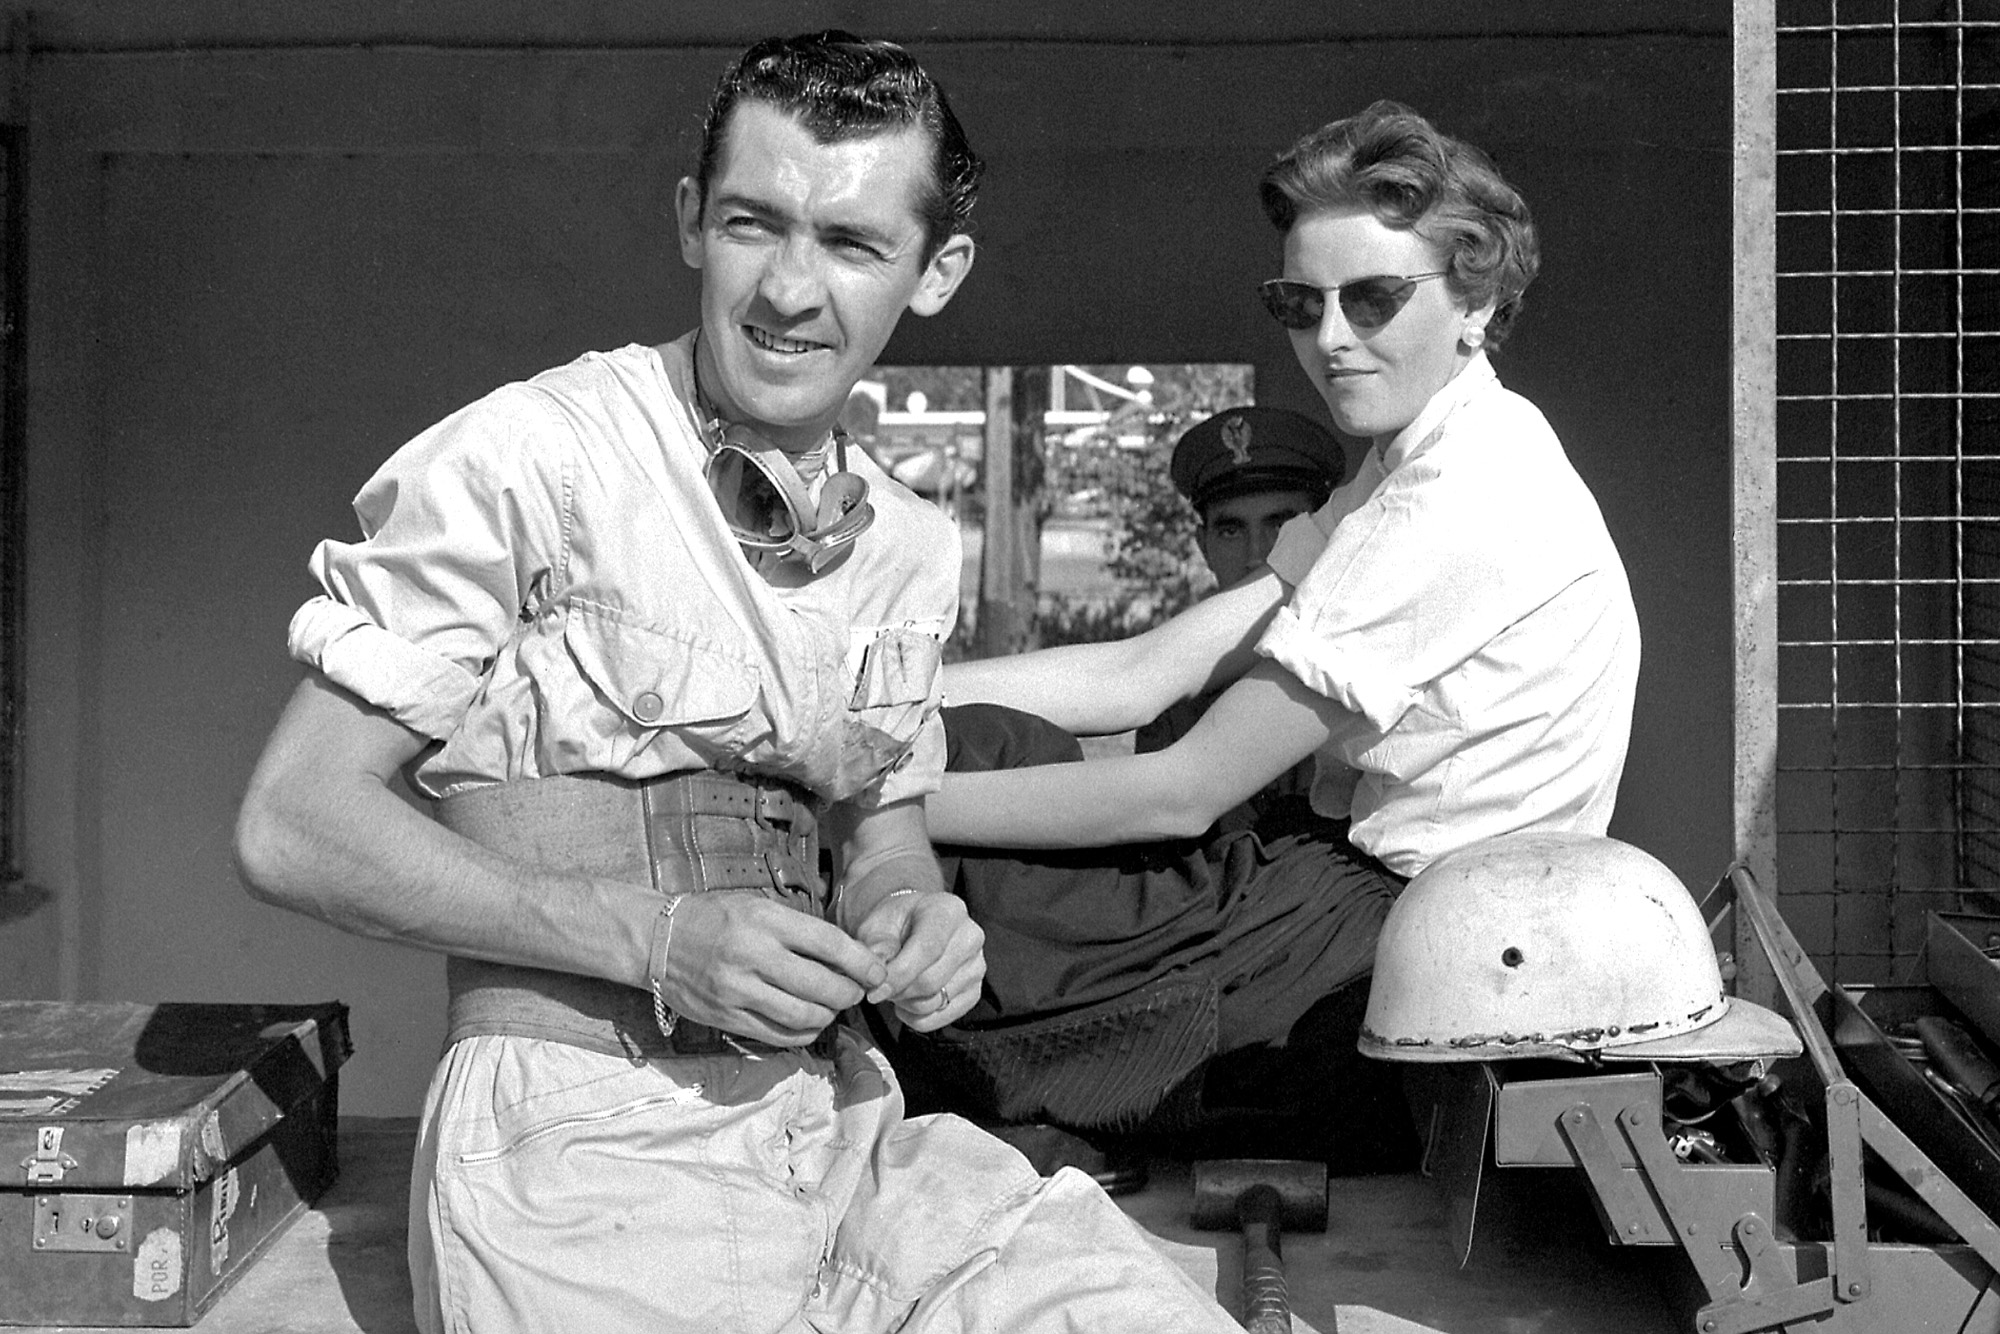 Stuart Lewis-Evans in the pits at Monza with his girlfriend ahead of the 1958 Italian Grand Prix